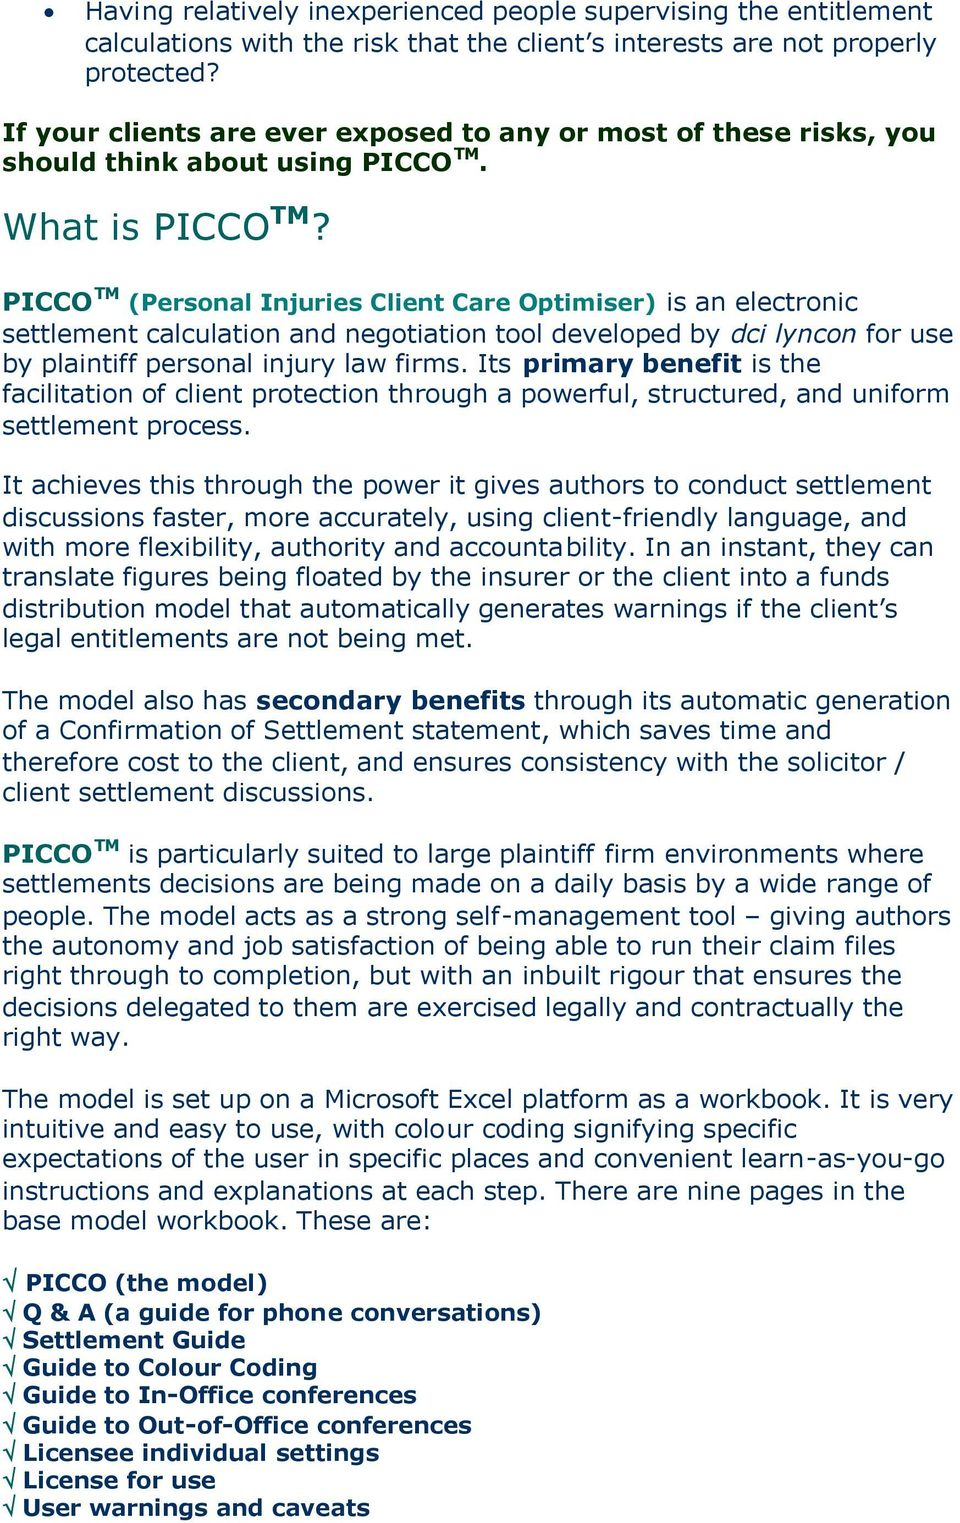 PICCO TM (Personal Injuries Client Care Optimiser) is an electronic settlement calculation and negotiation tool developed by dci lyncon for use by plaintiff personal injury law firms.